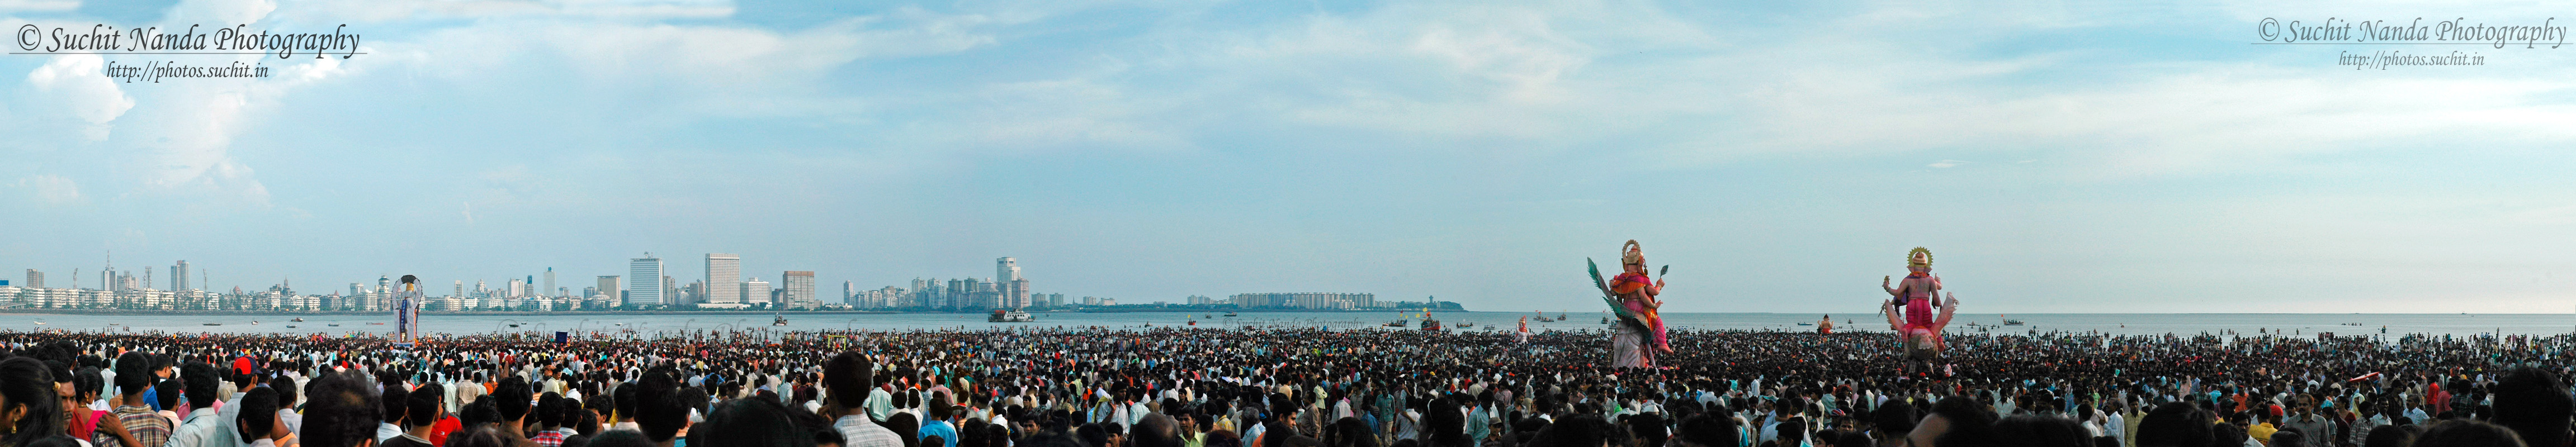 Huge congression of people for Ganapati Visarjan at Chowpatty beach, Mumbai (Bombay).  Hindu God, Ganesh is the god of good fortune. During Ganesh festival the idol of Lord Ganesh is bought into many homes and worshipped for 10 days, and on the 11th day the idol is immersed in water.  See it large size by clicking:  http://photos.suchit.in/photos/388767382_j88od-O.jpg